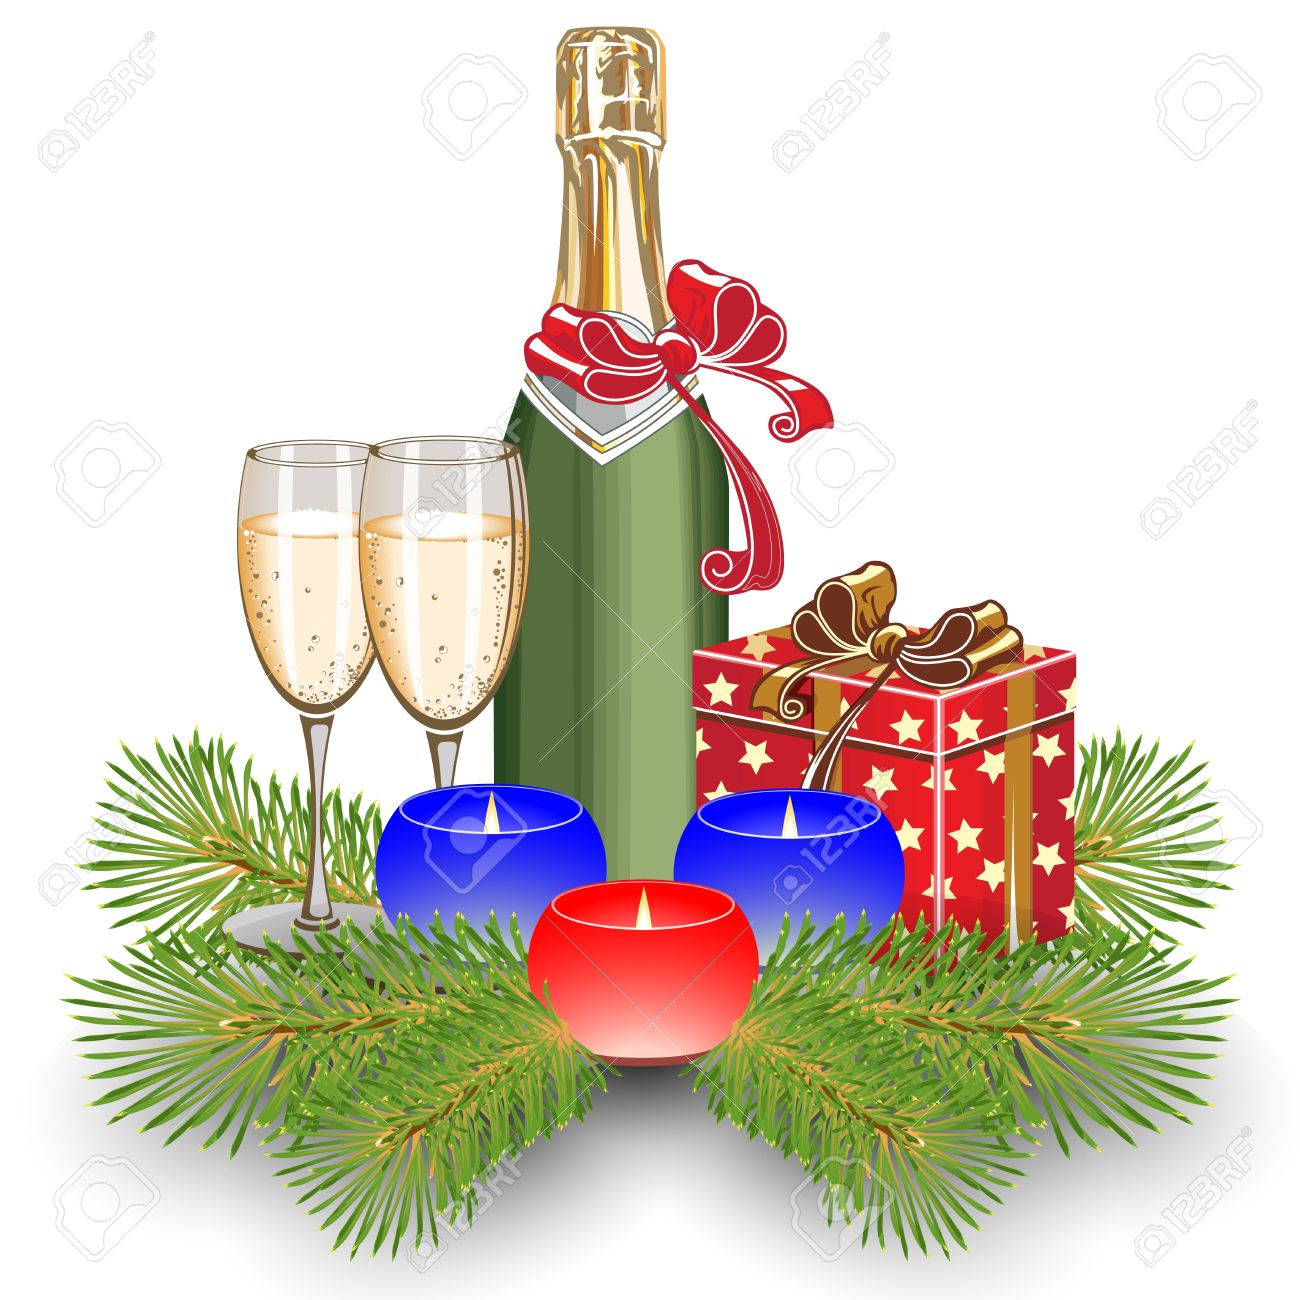 Candles on fir trees. Two glasses of champagne. Gift Box. Christmas. Stock Vector - 11650806